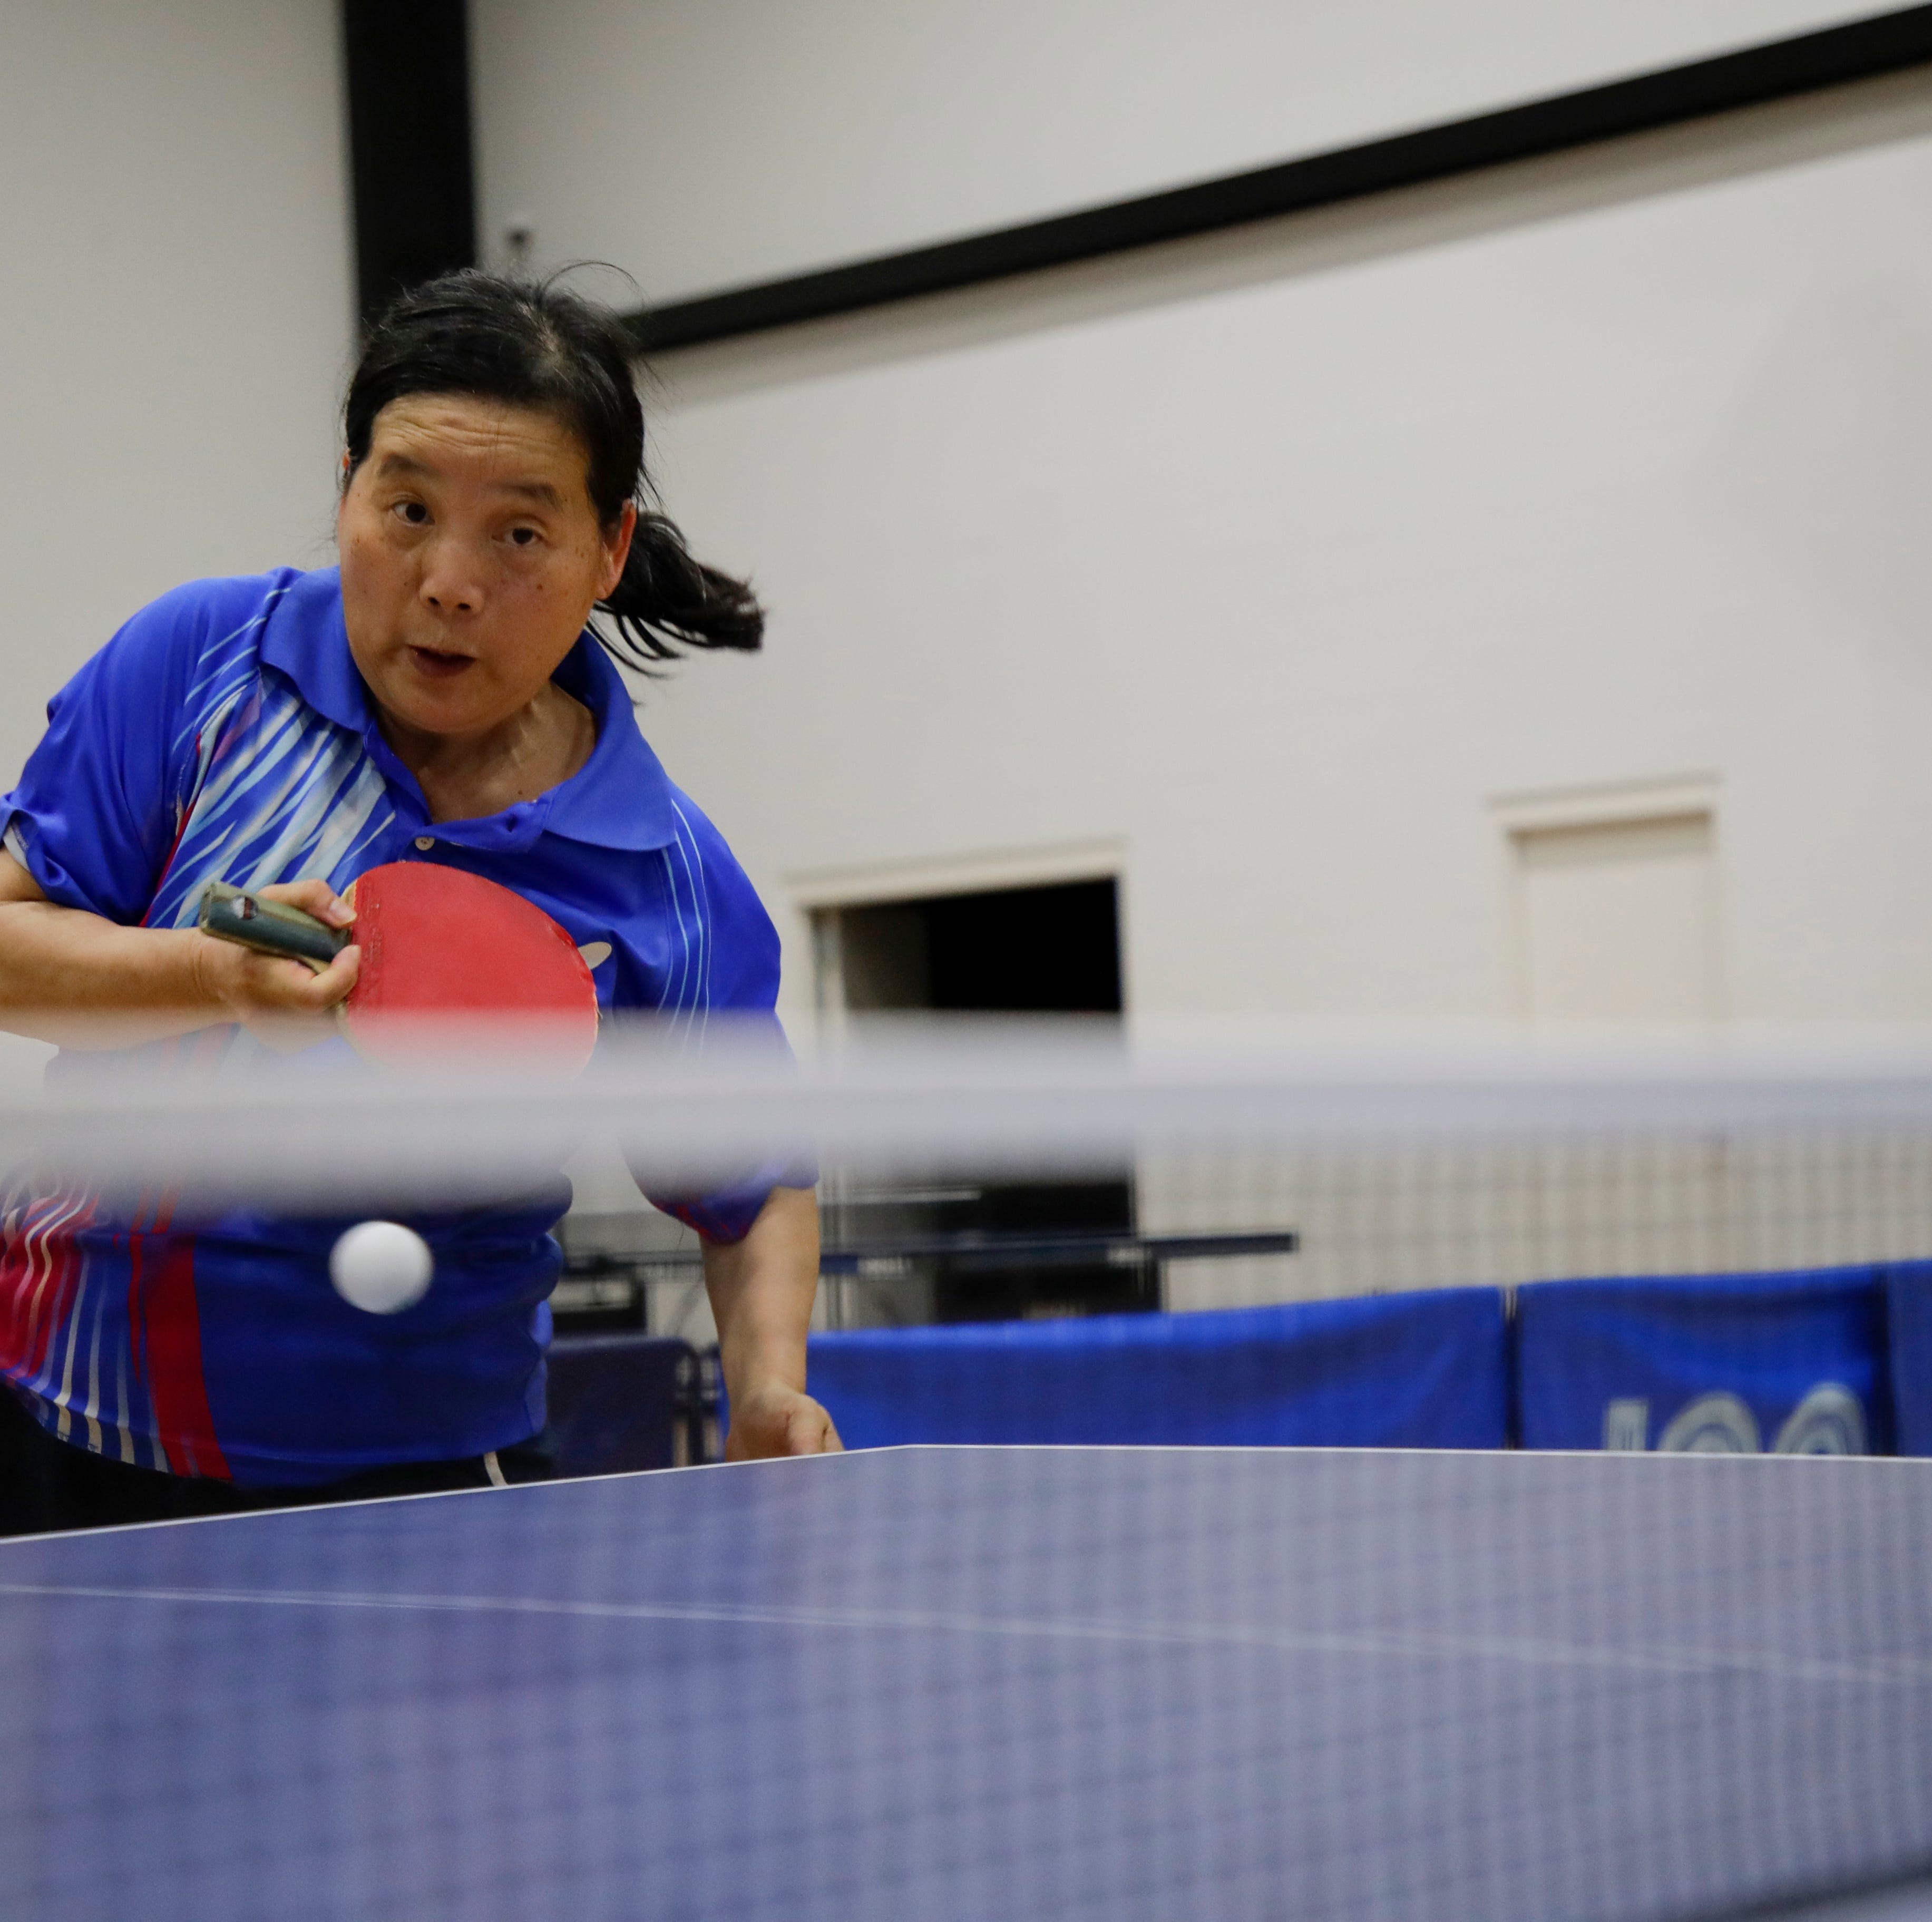 The balls may ping and pong, but call it table tennis